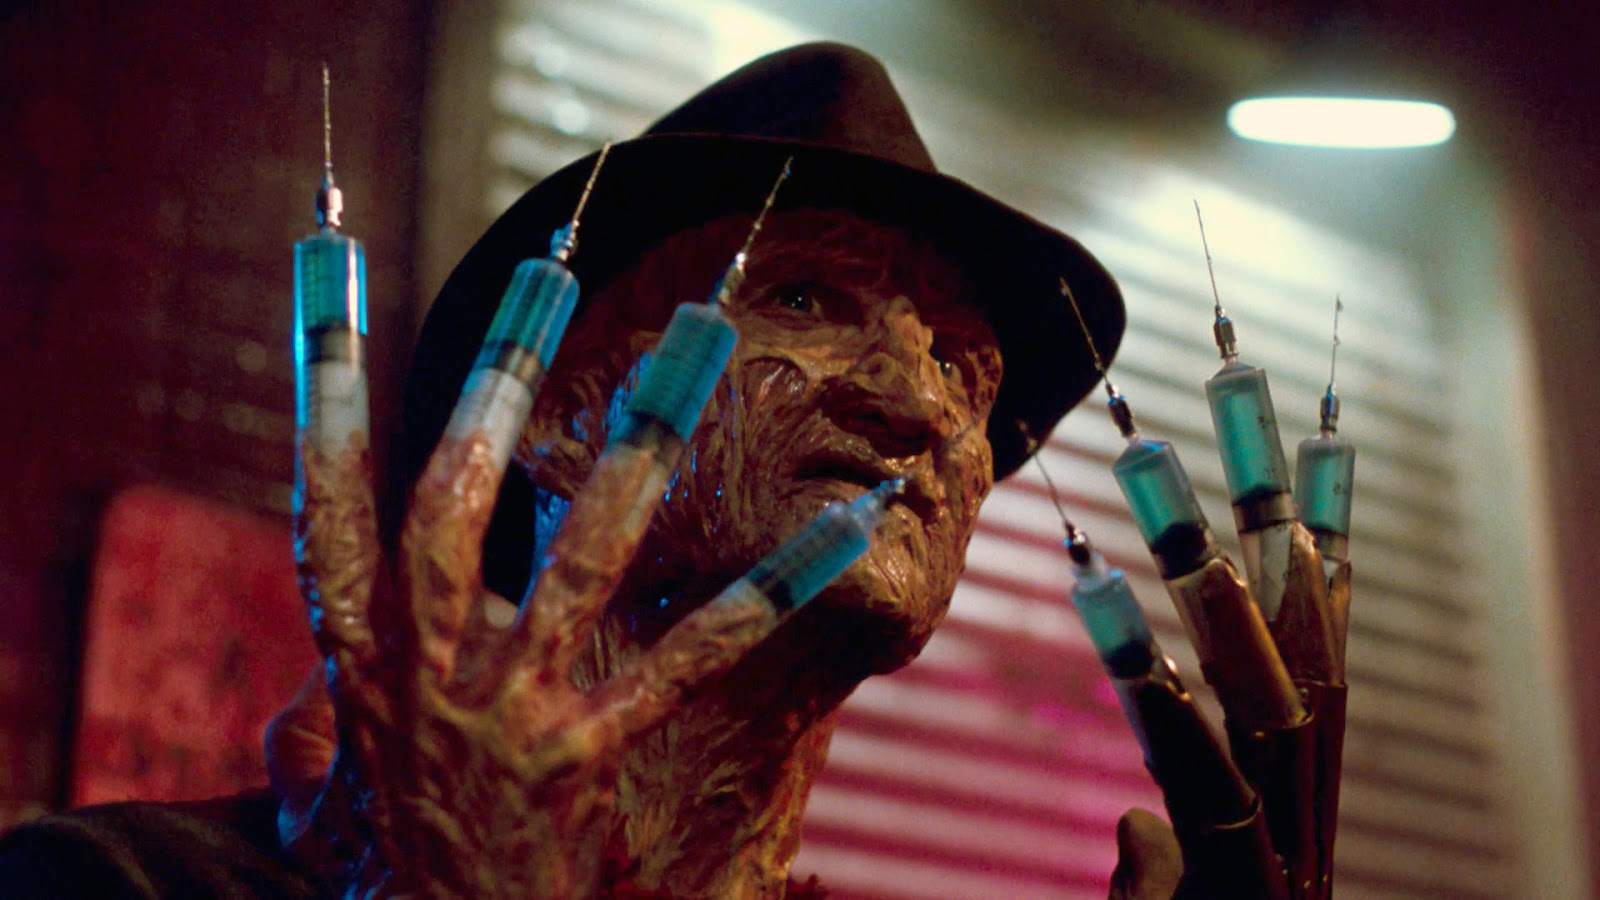 This is a still from the film A Nightmare on Elm Street 3: Dream Warriors.